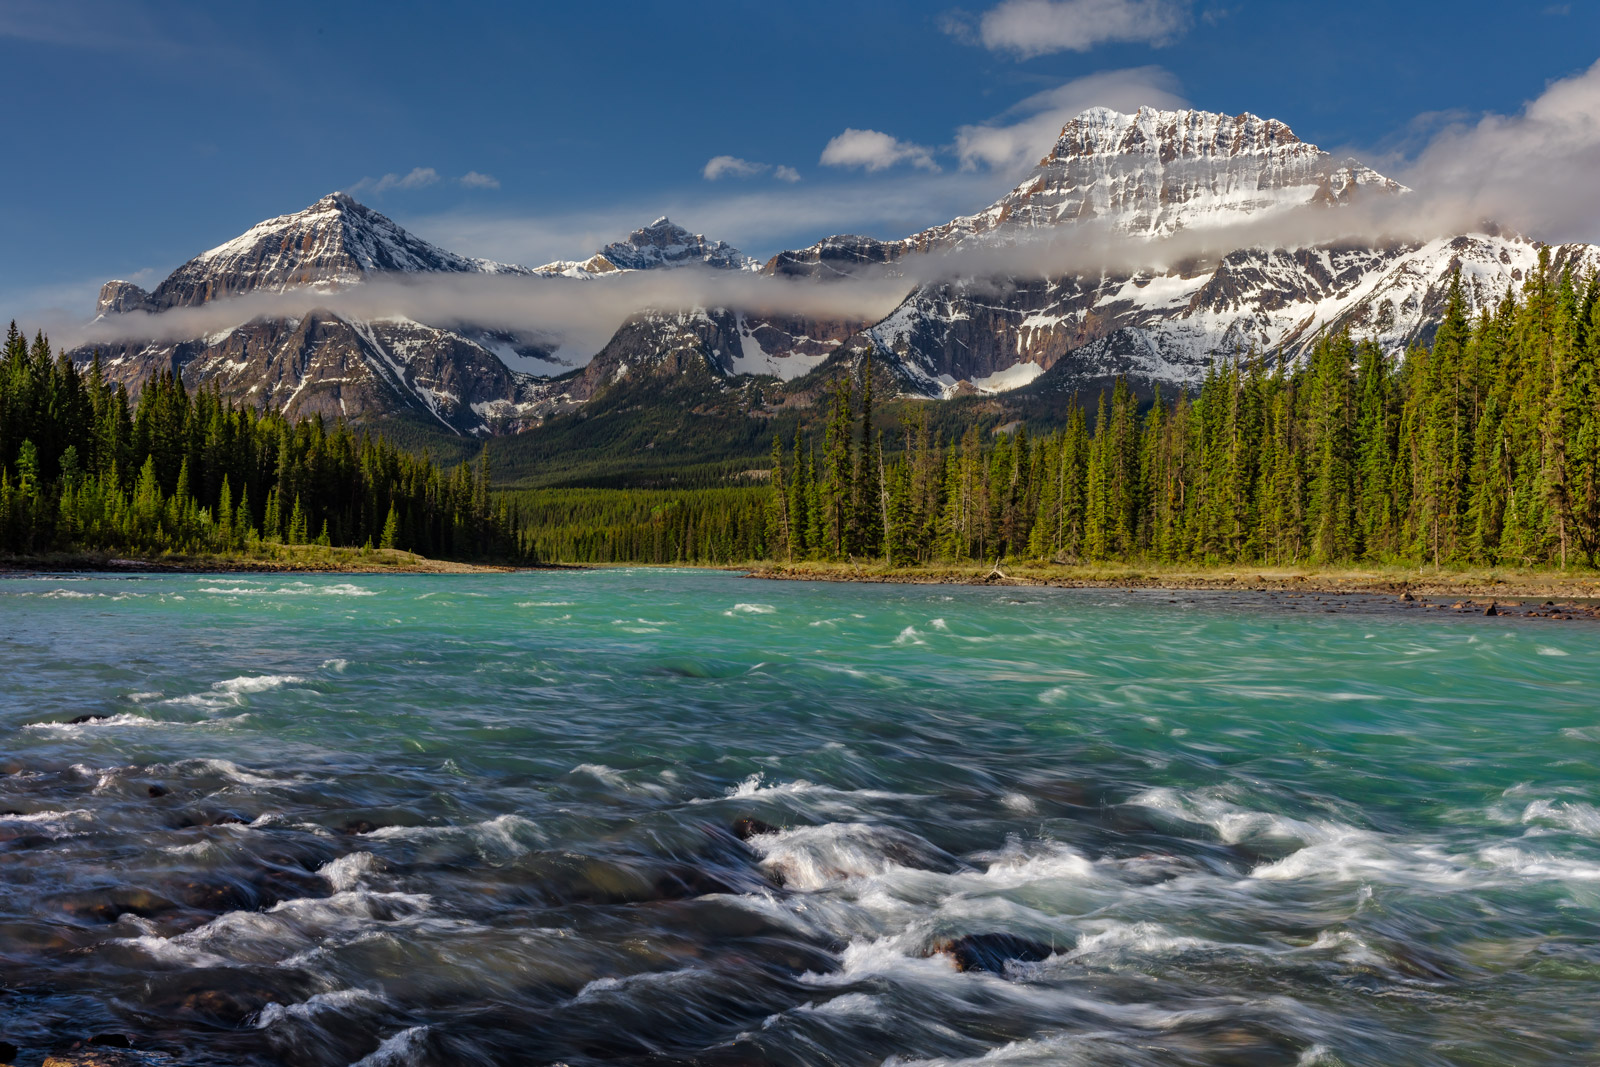 Canada, Canadian Rockies, Athabasca, River, limited edition, photograph, fine art, landscape, photo